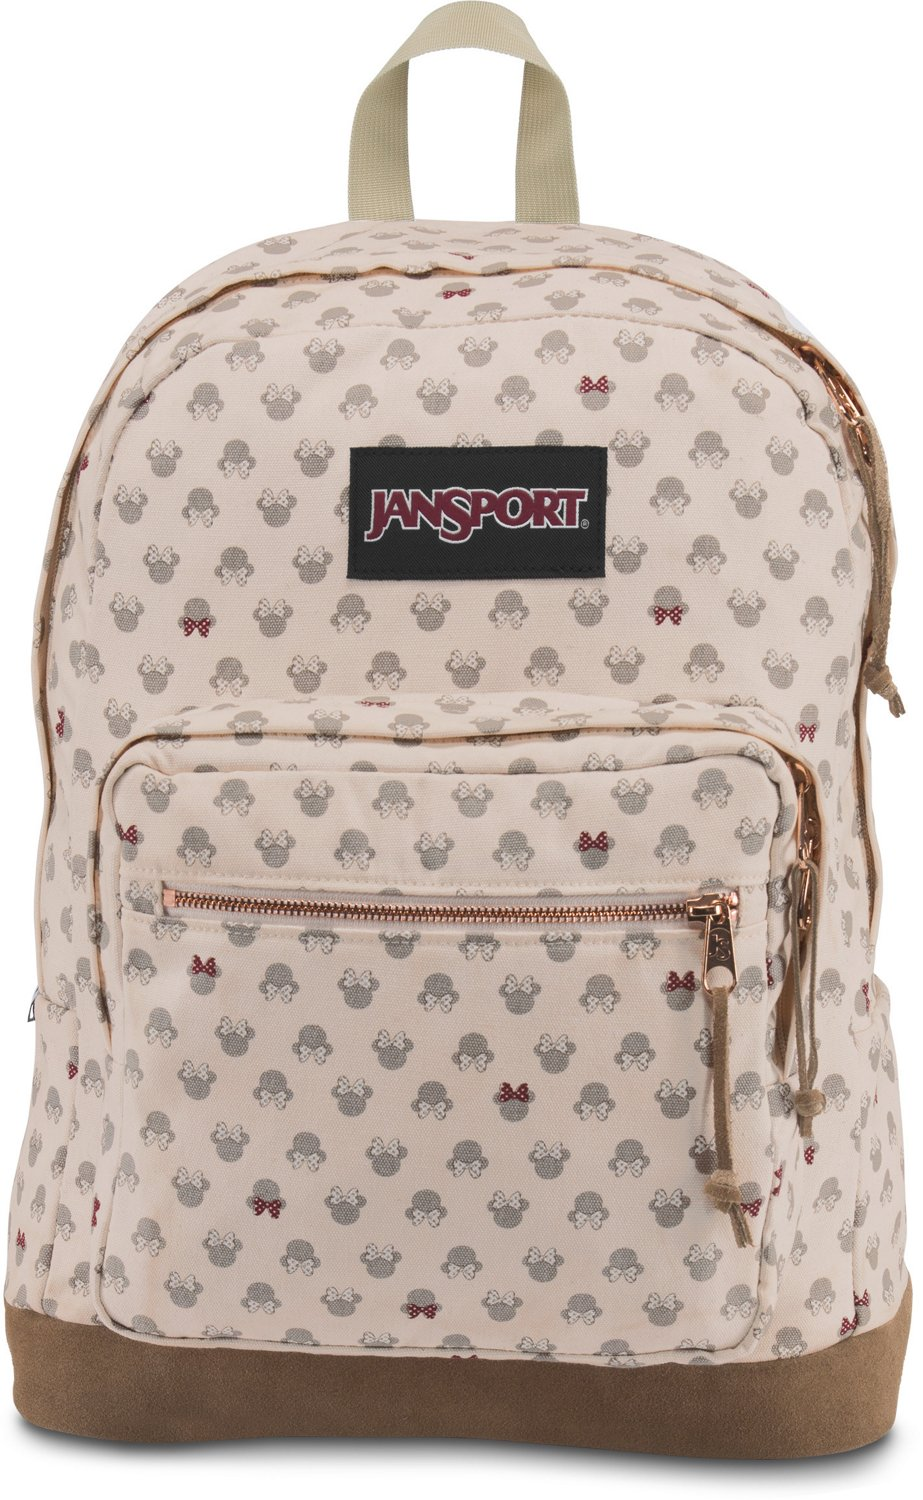 16b6adb59 Display product reviews for JanSport Disney Right Pack Expressions Backpack